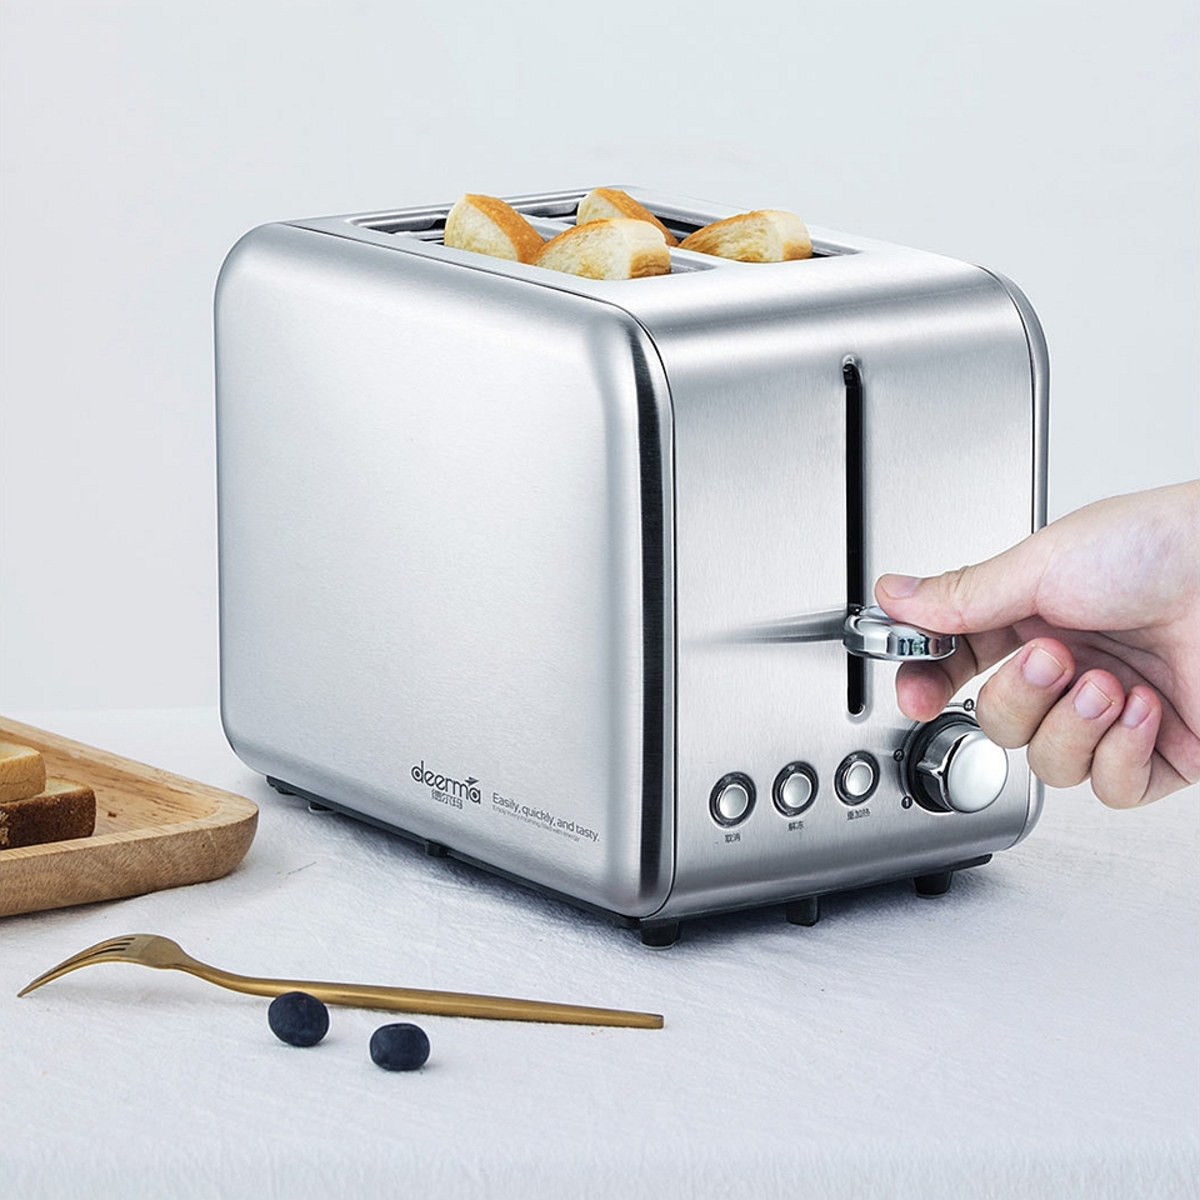 Deerma Electric Bread Toaster